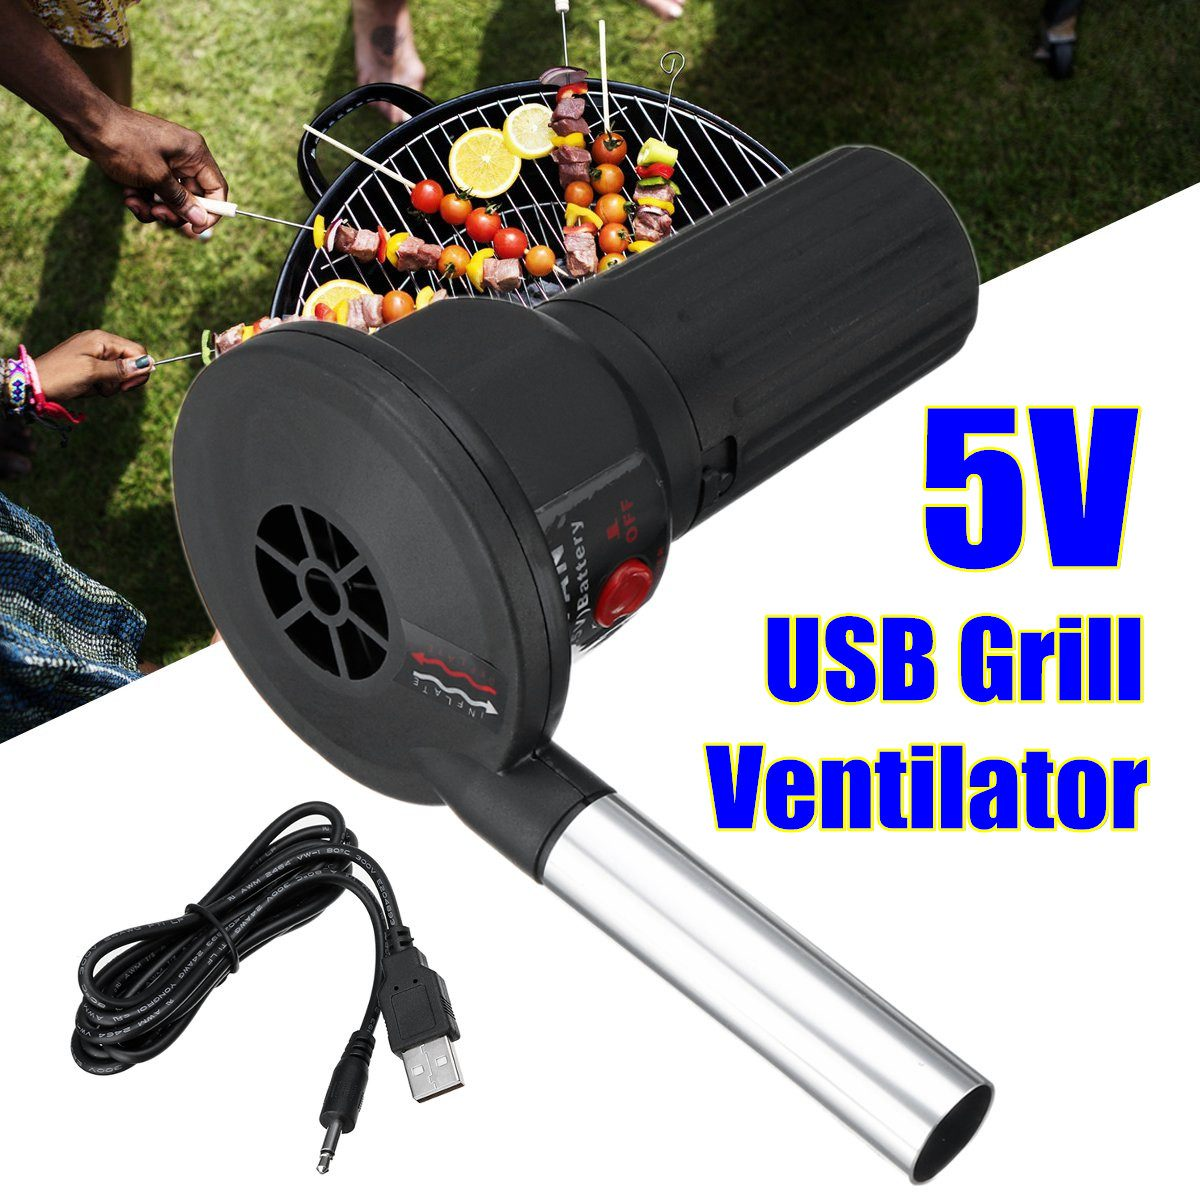 Hot Sale 5V DC USB Cable BBQ Fan Air Blowers  Grill Ventilator Barbecue Blower For Outdoor Camping Picnic Barbecue Cooking Tool